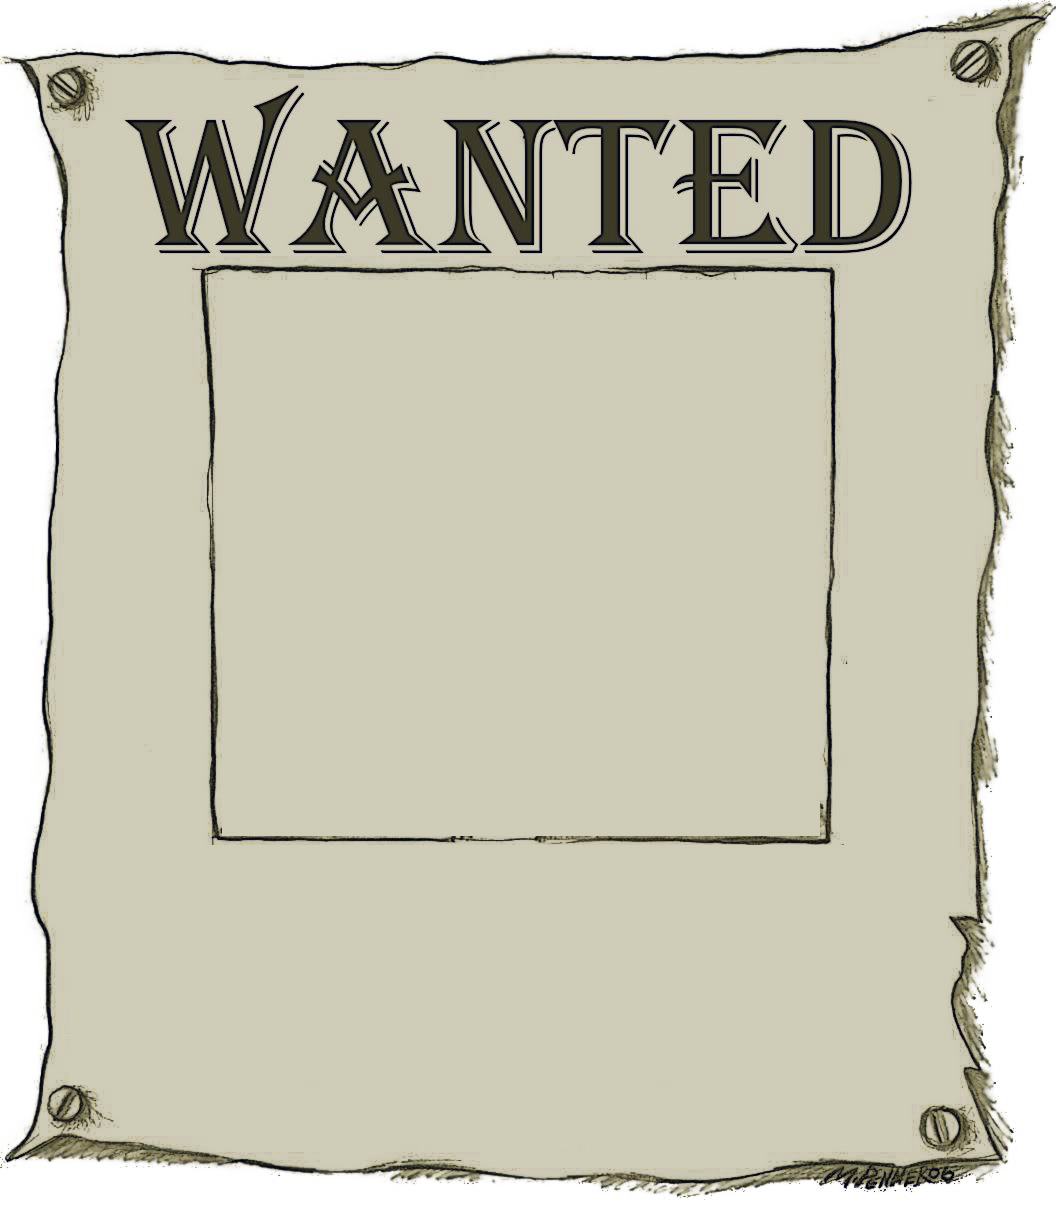 Wanted poster with border PPT Backgrounds